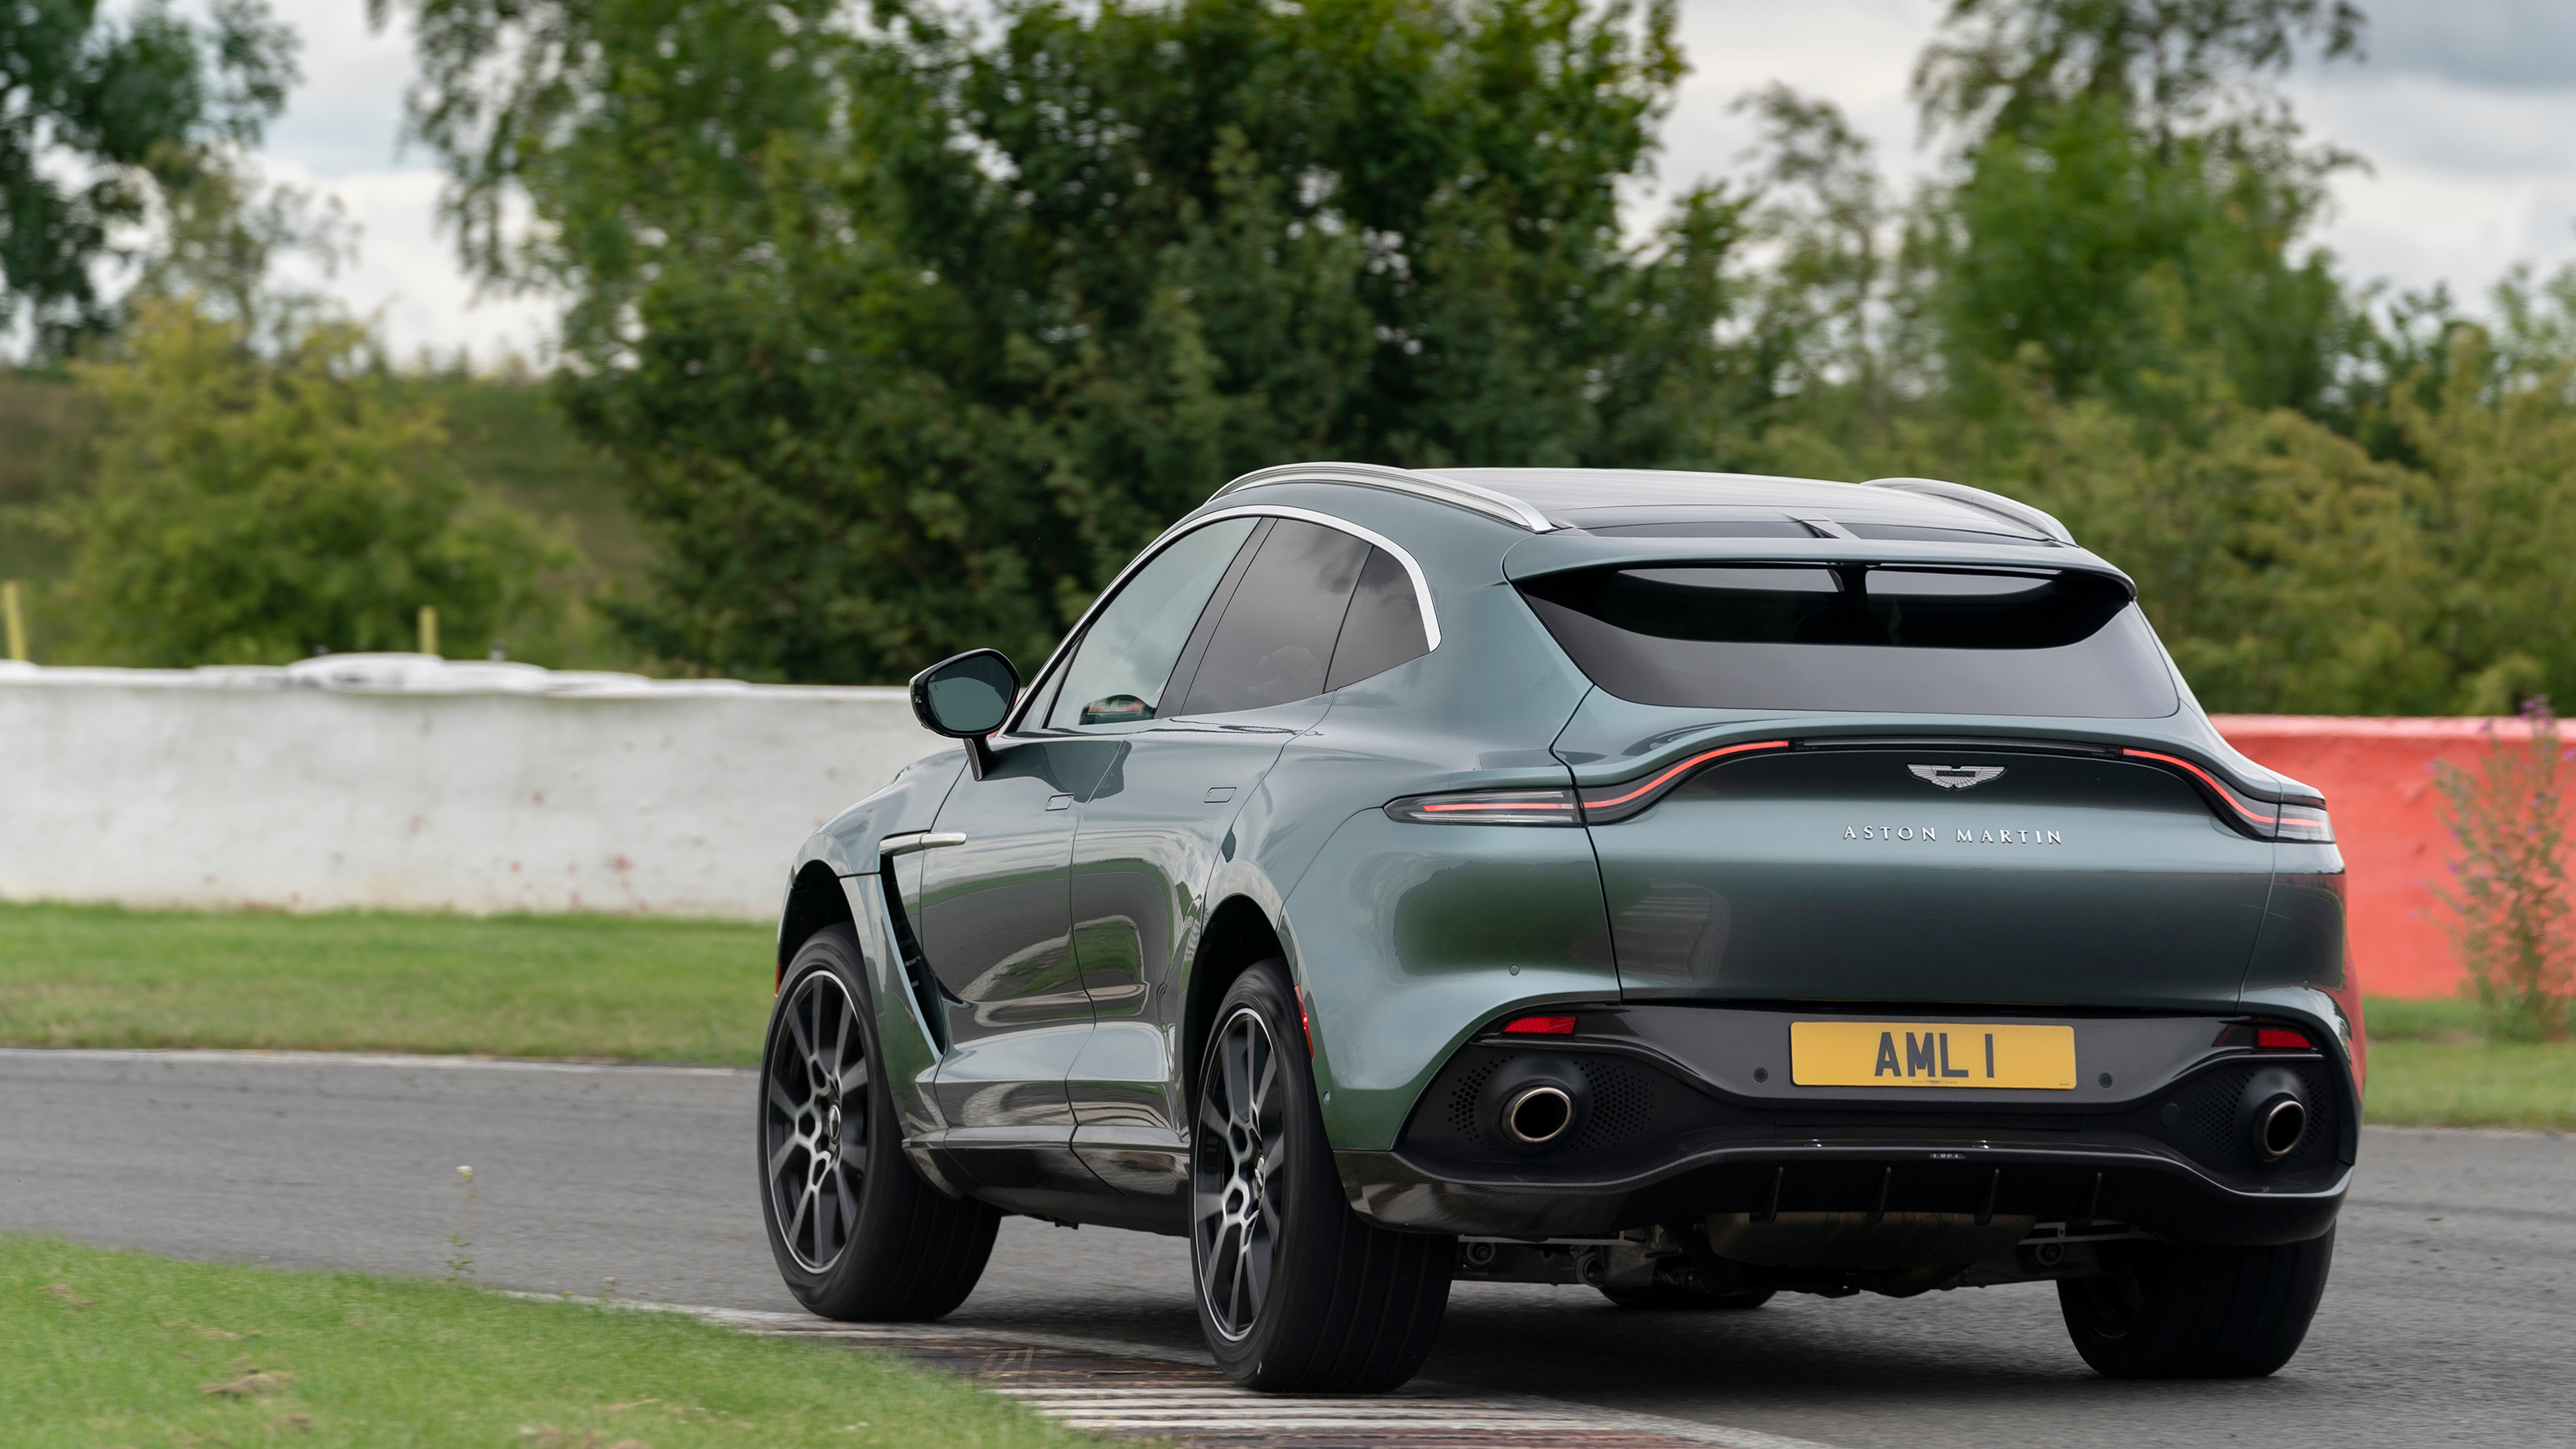 Aston Martin Dbx Review The First Performance Suv To Deliver On Its Promise Evo